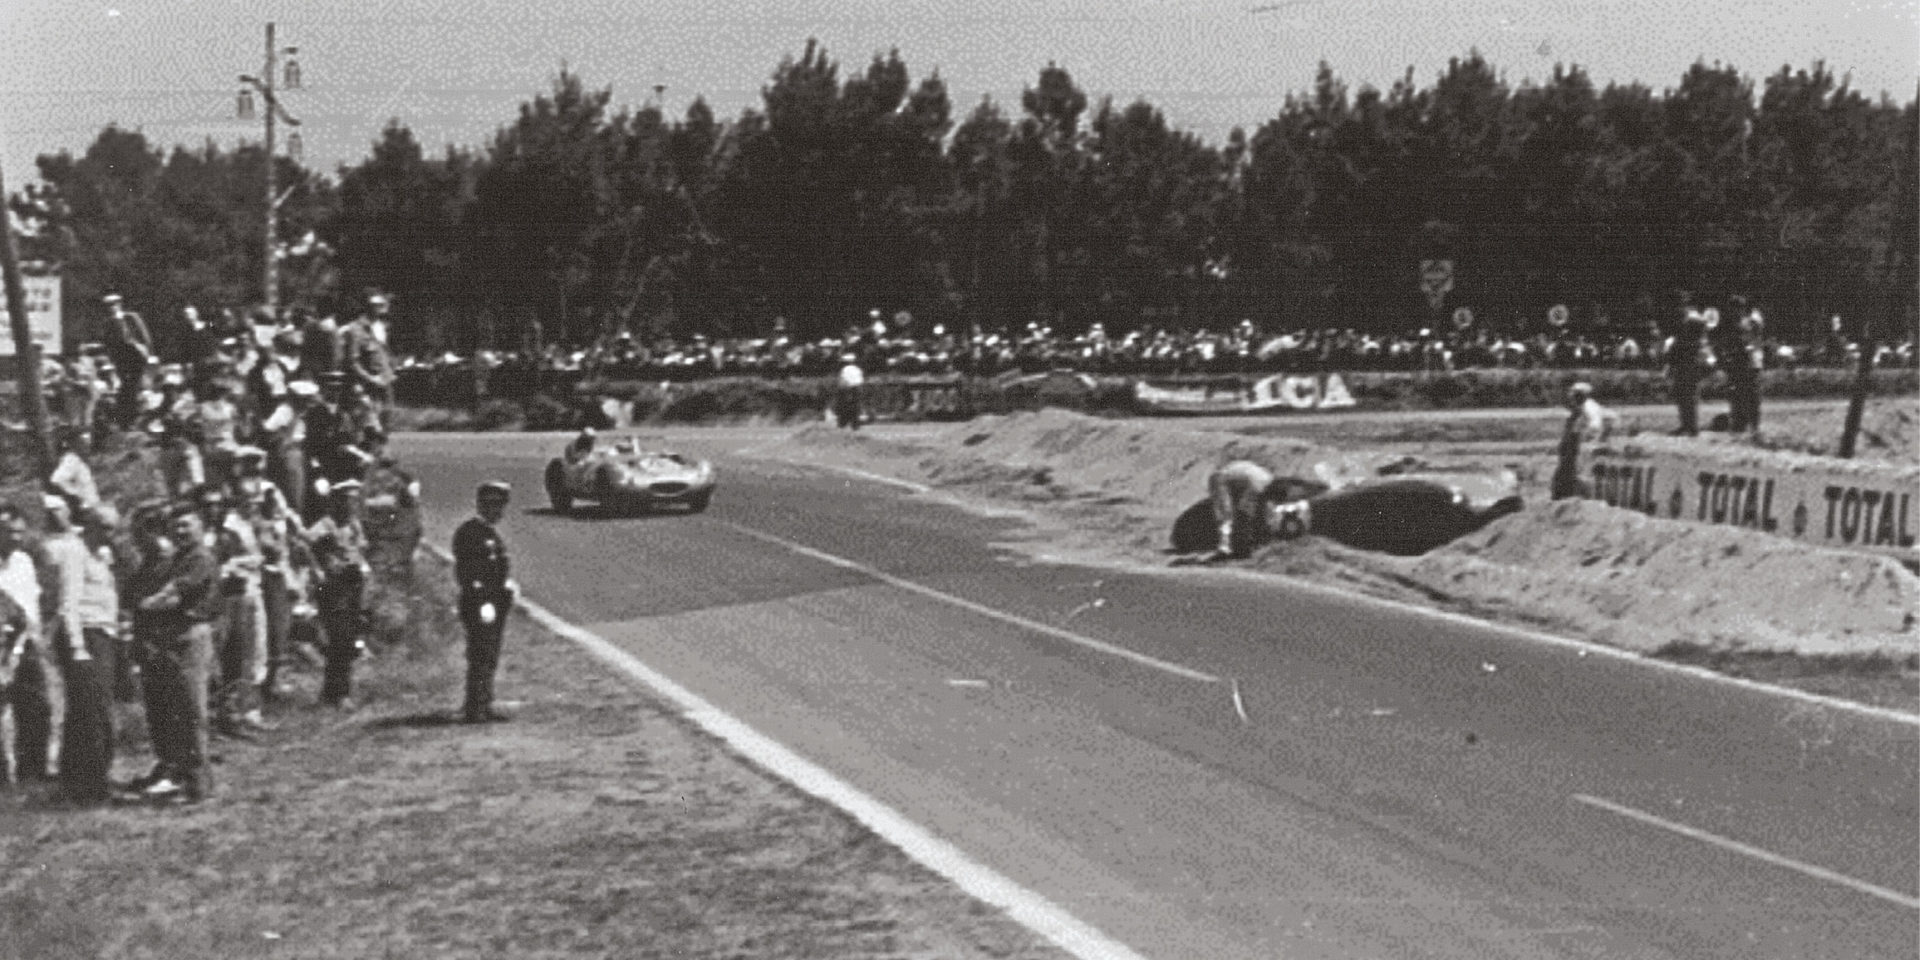 The Aston Martin DBR1 of Ian Baillie and Jack Fairman hits trouble, but was dug out in time to finish ninth